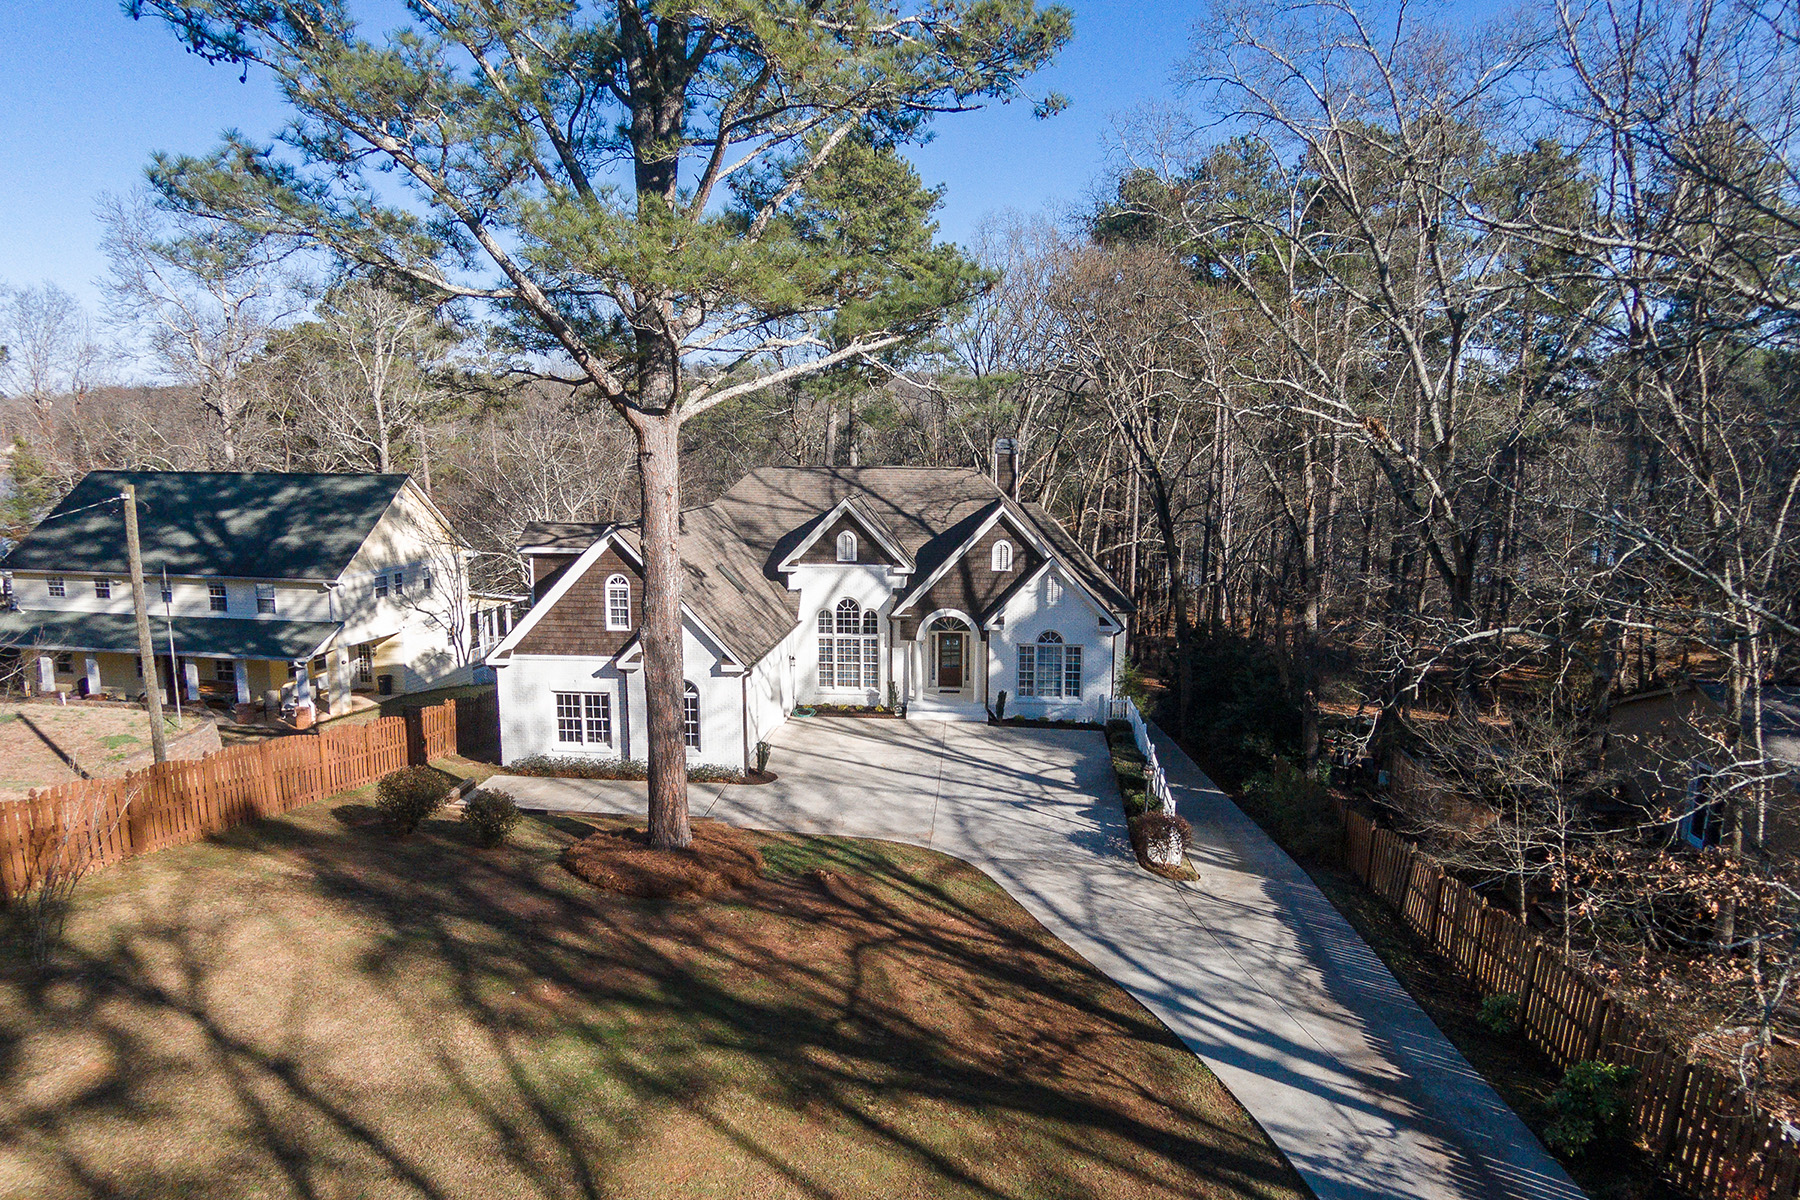 Single Family Homes for Sale at Newly Renovated Home On Deep Water on Lake Lanier 7844 Floyd Lane Gainesville, Georgia 30506 United States